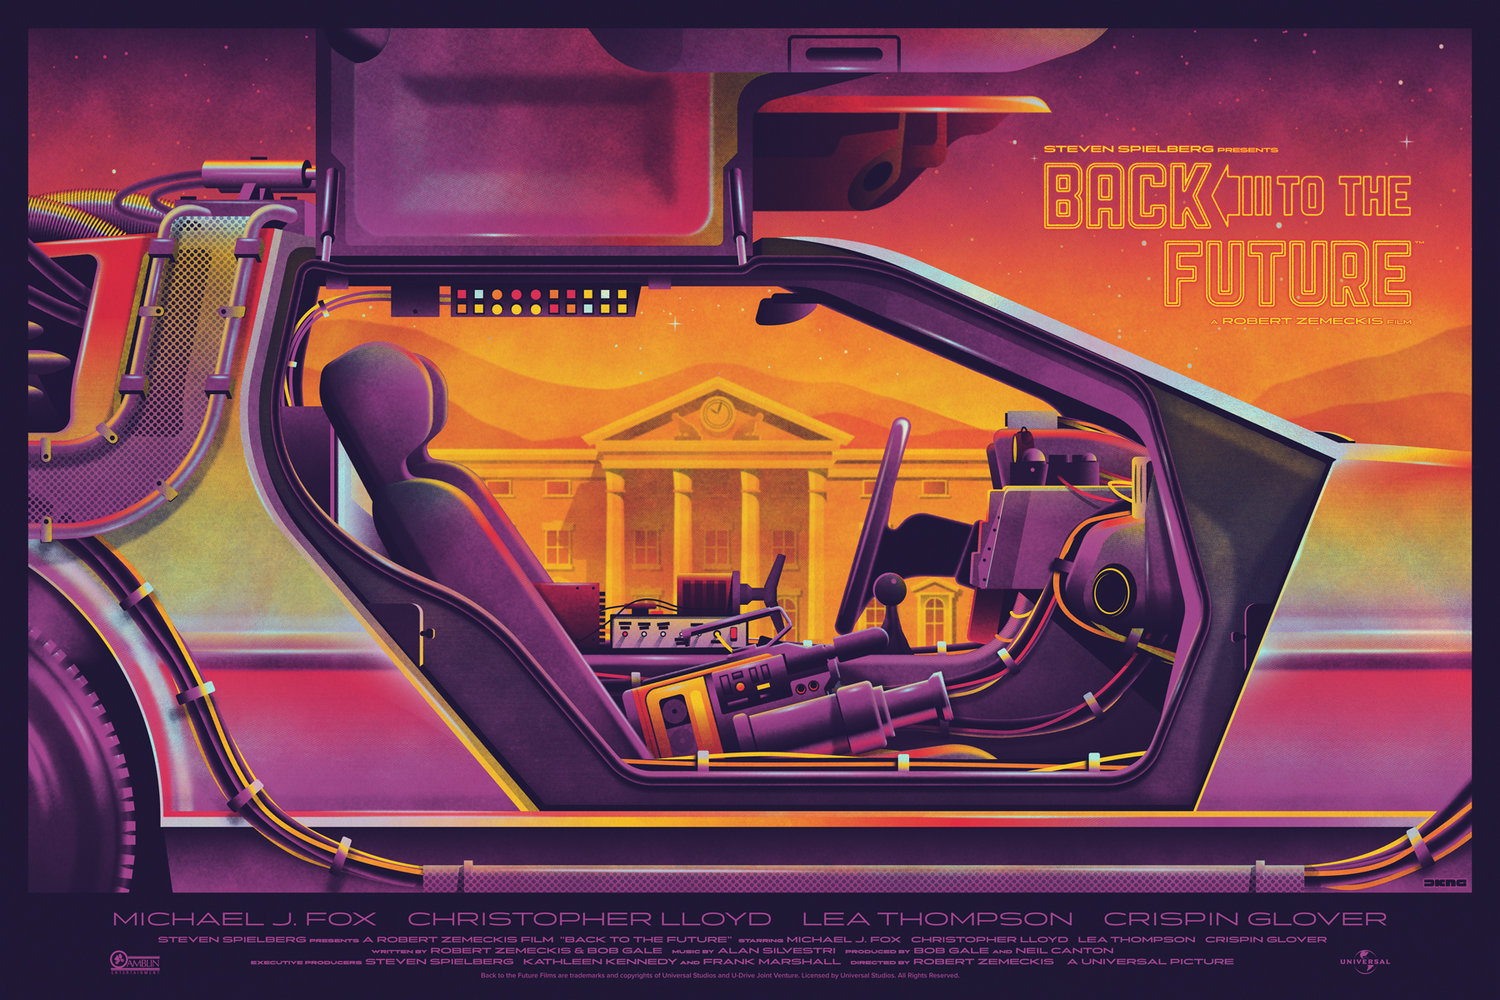 Back+to+the+Future+poster+by+DKNG_var.jpg